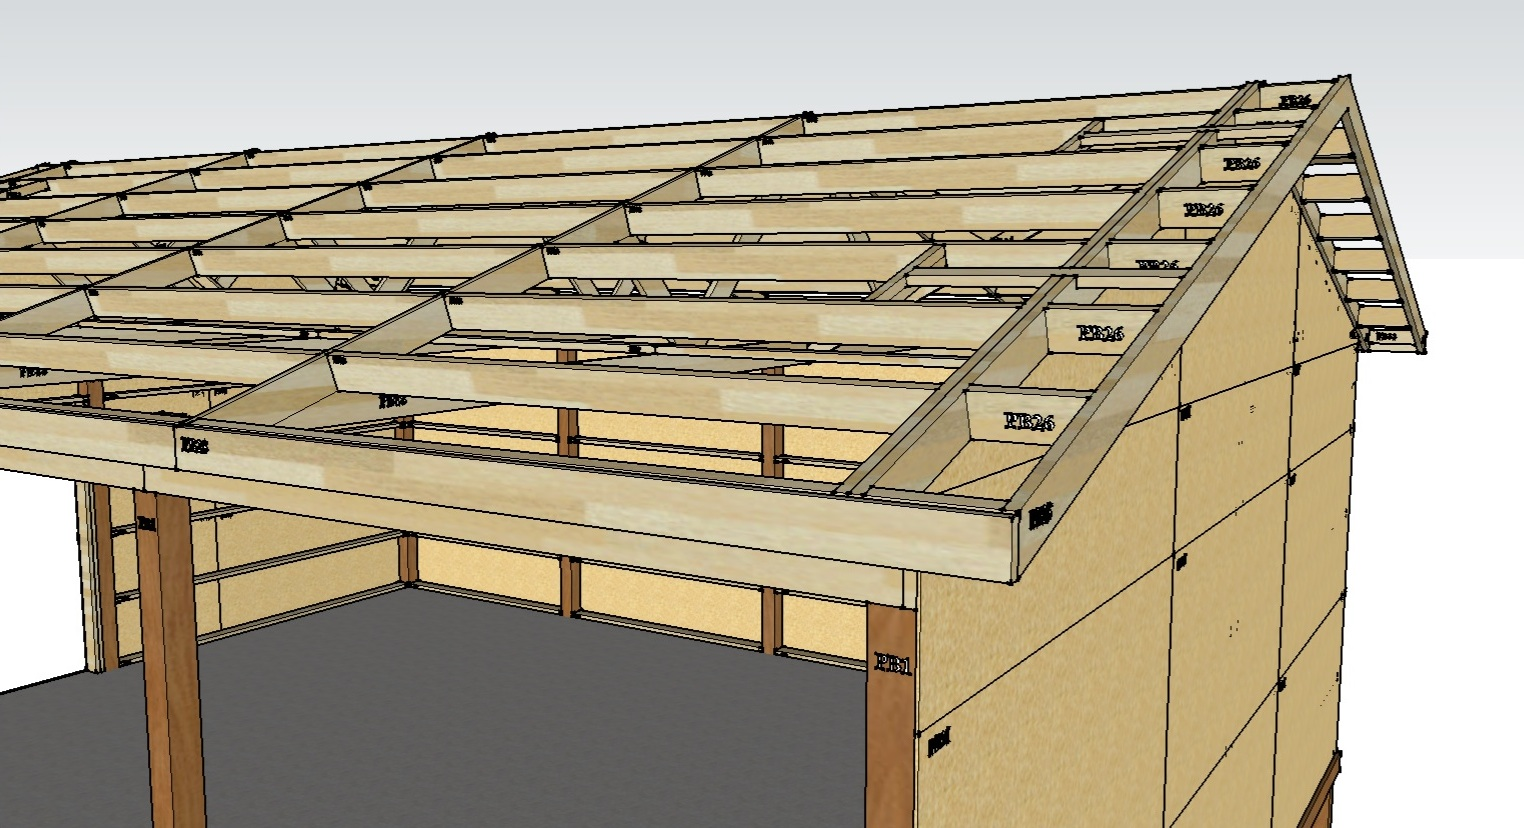 how to build a pole barn plans | Online Woodworking Plans